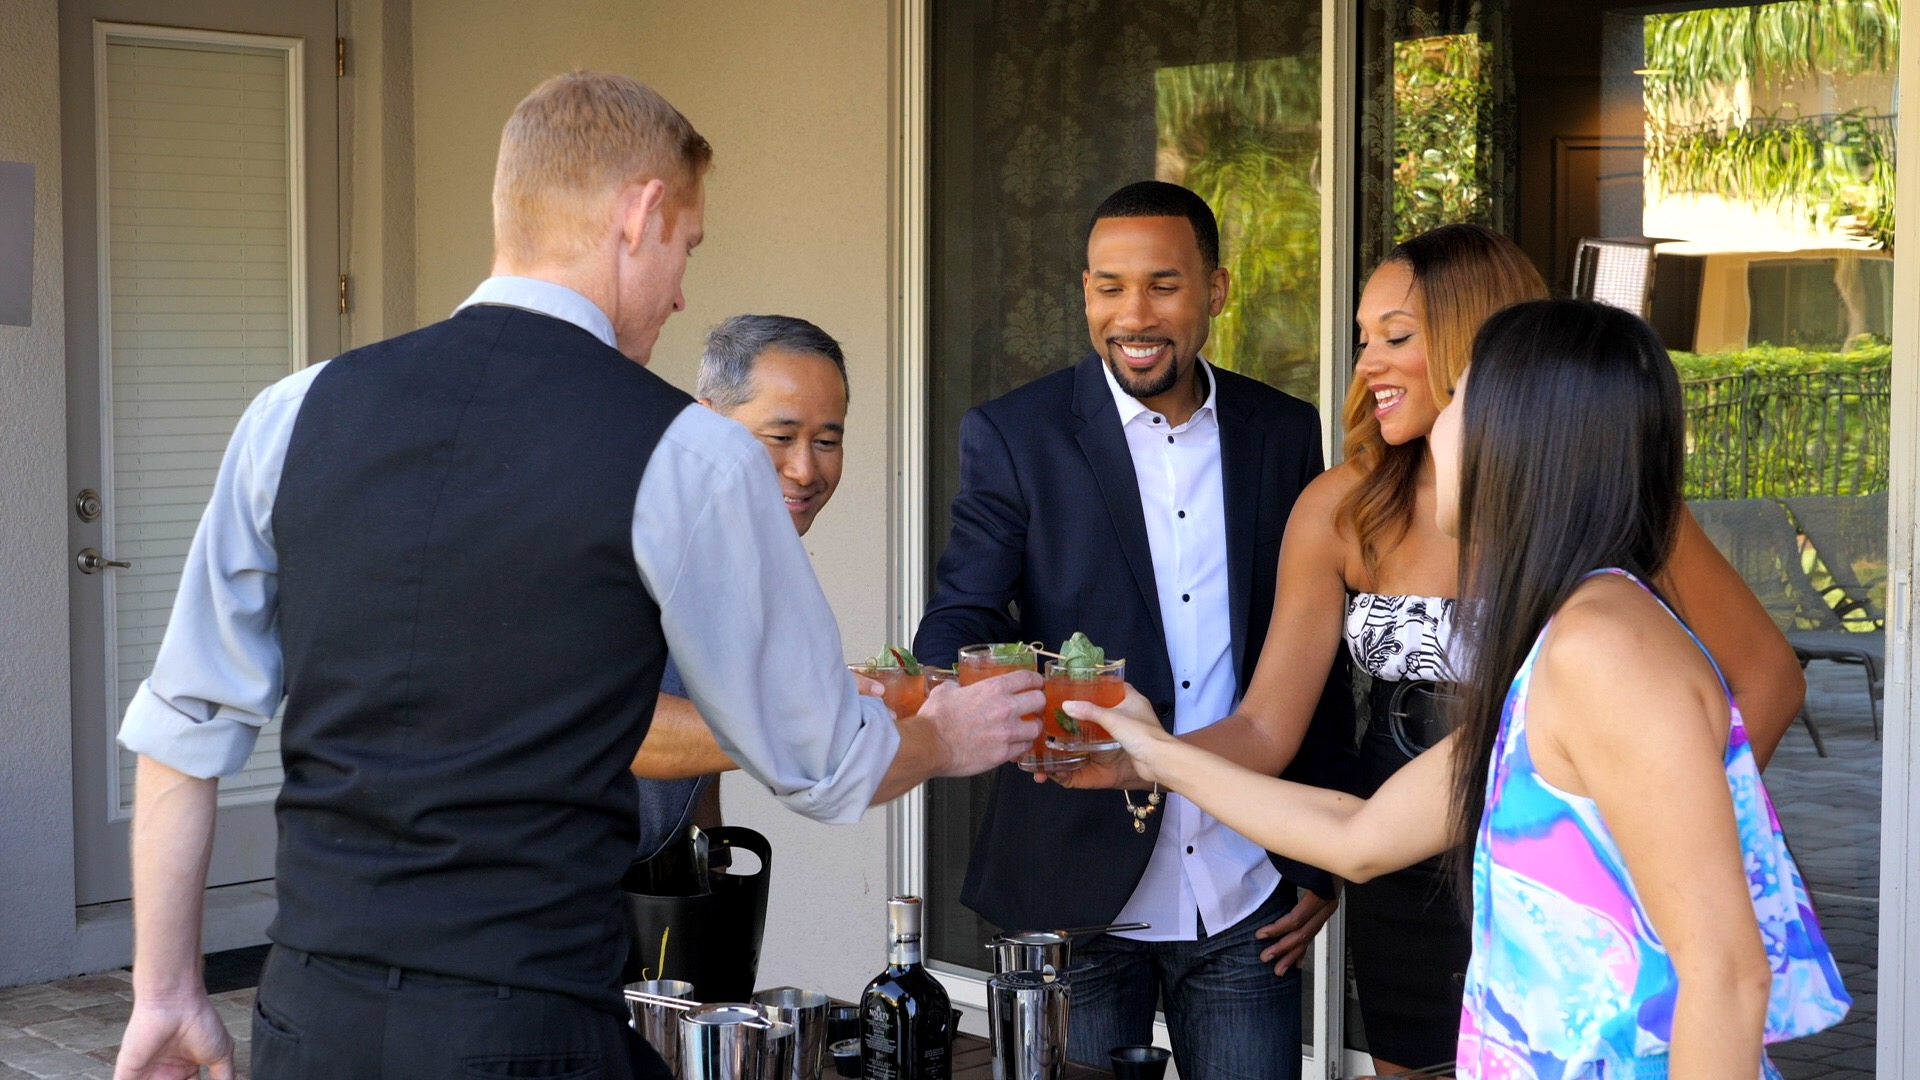 A group clinks glasses in a toast during an Encore Resort in-home bartender experience.